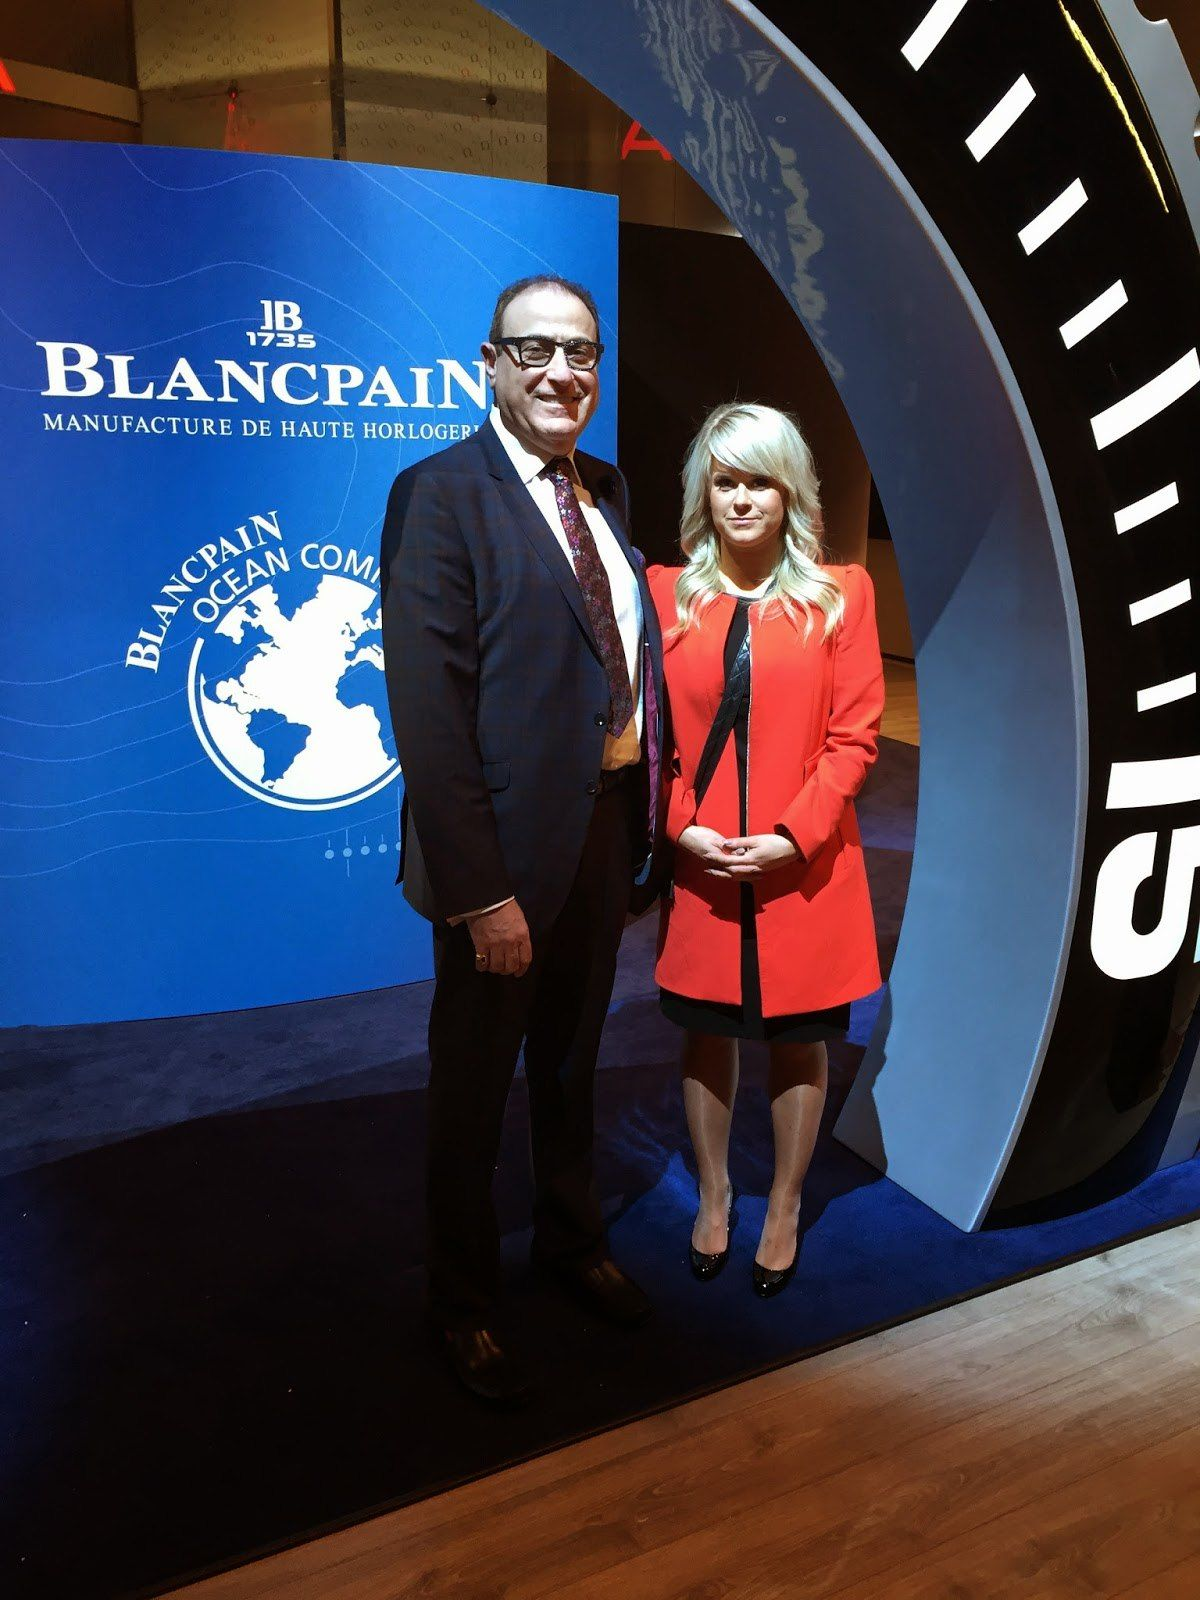 Bernard and Christina blancpain Basel